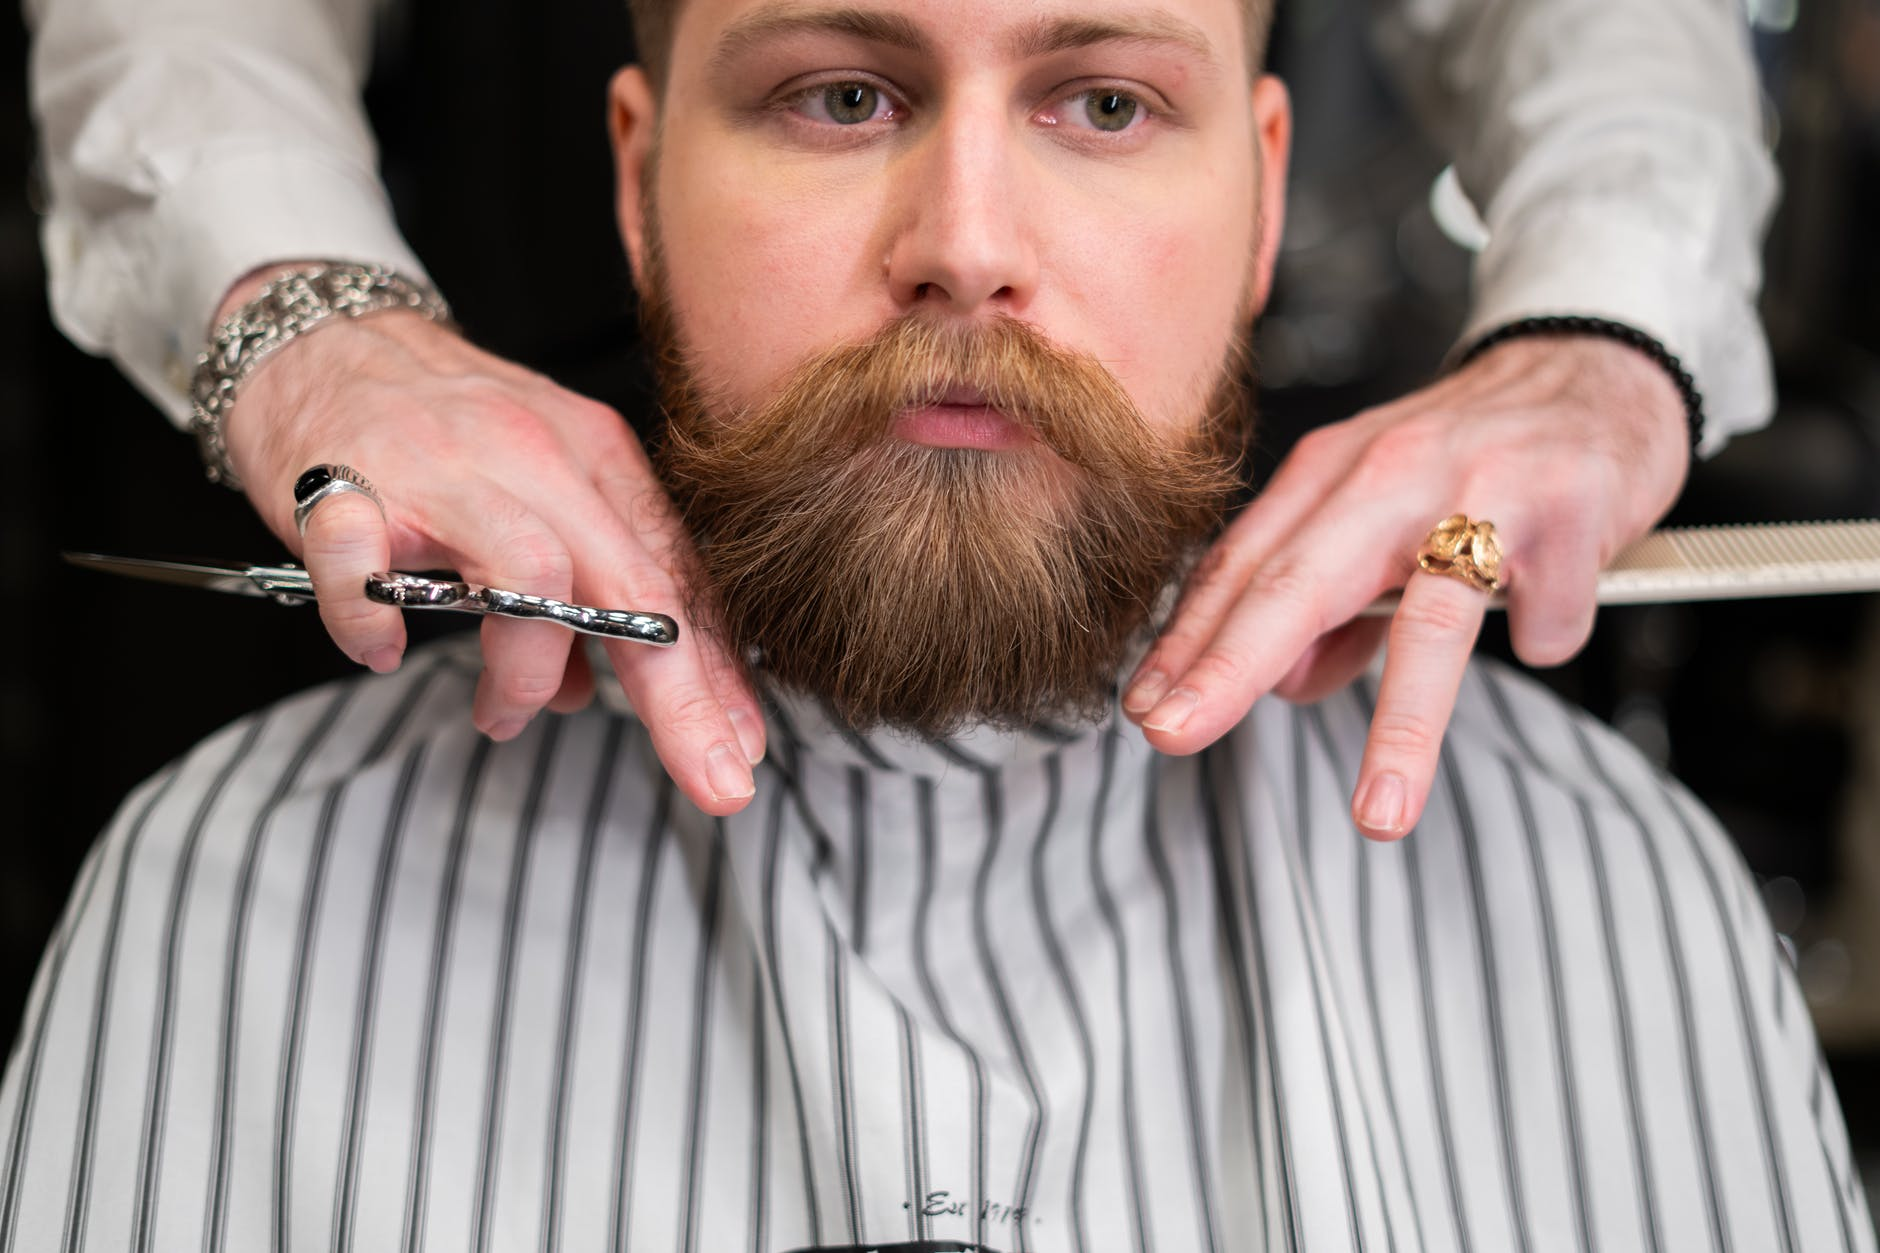 man in white and gray pinstripe having a haircut